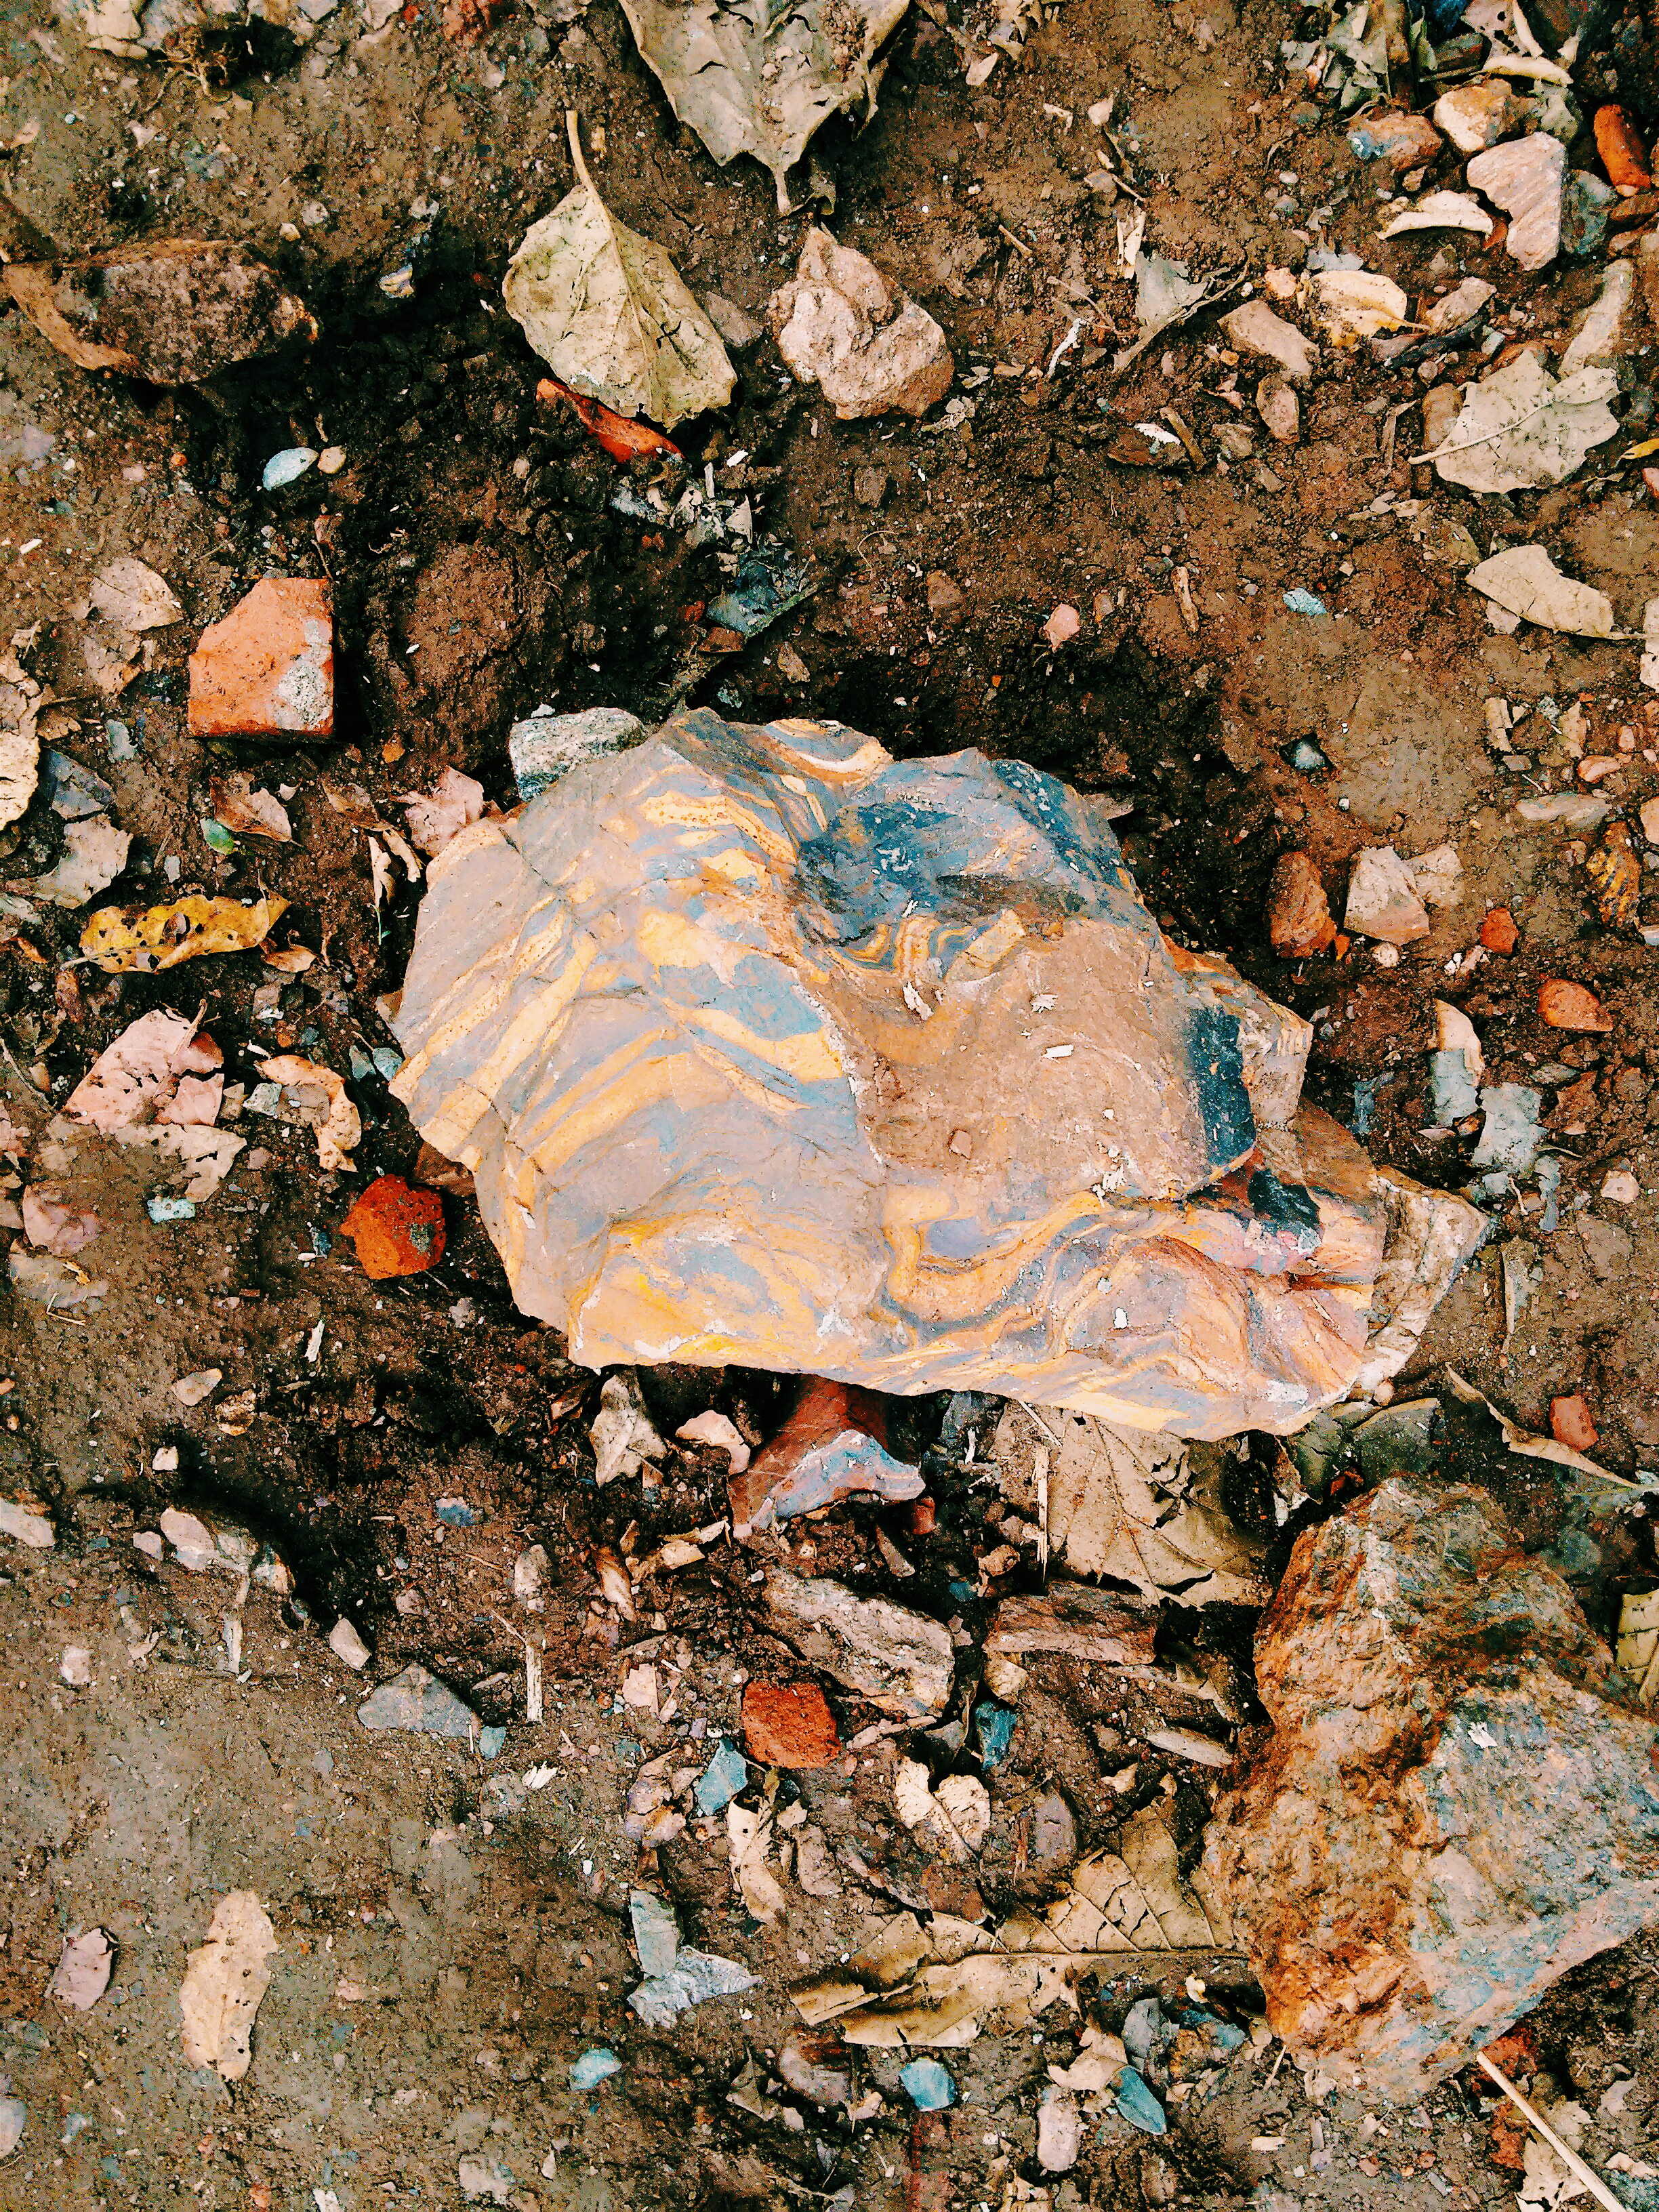 Unique 'rainbow' rock at KSV site, Dharwad, India